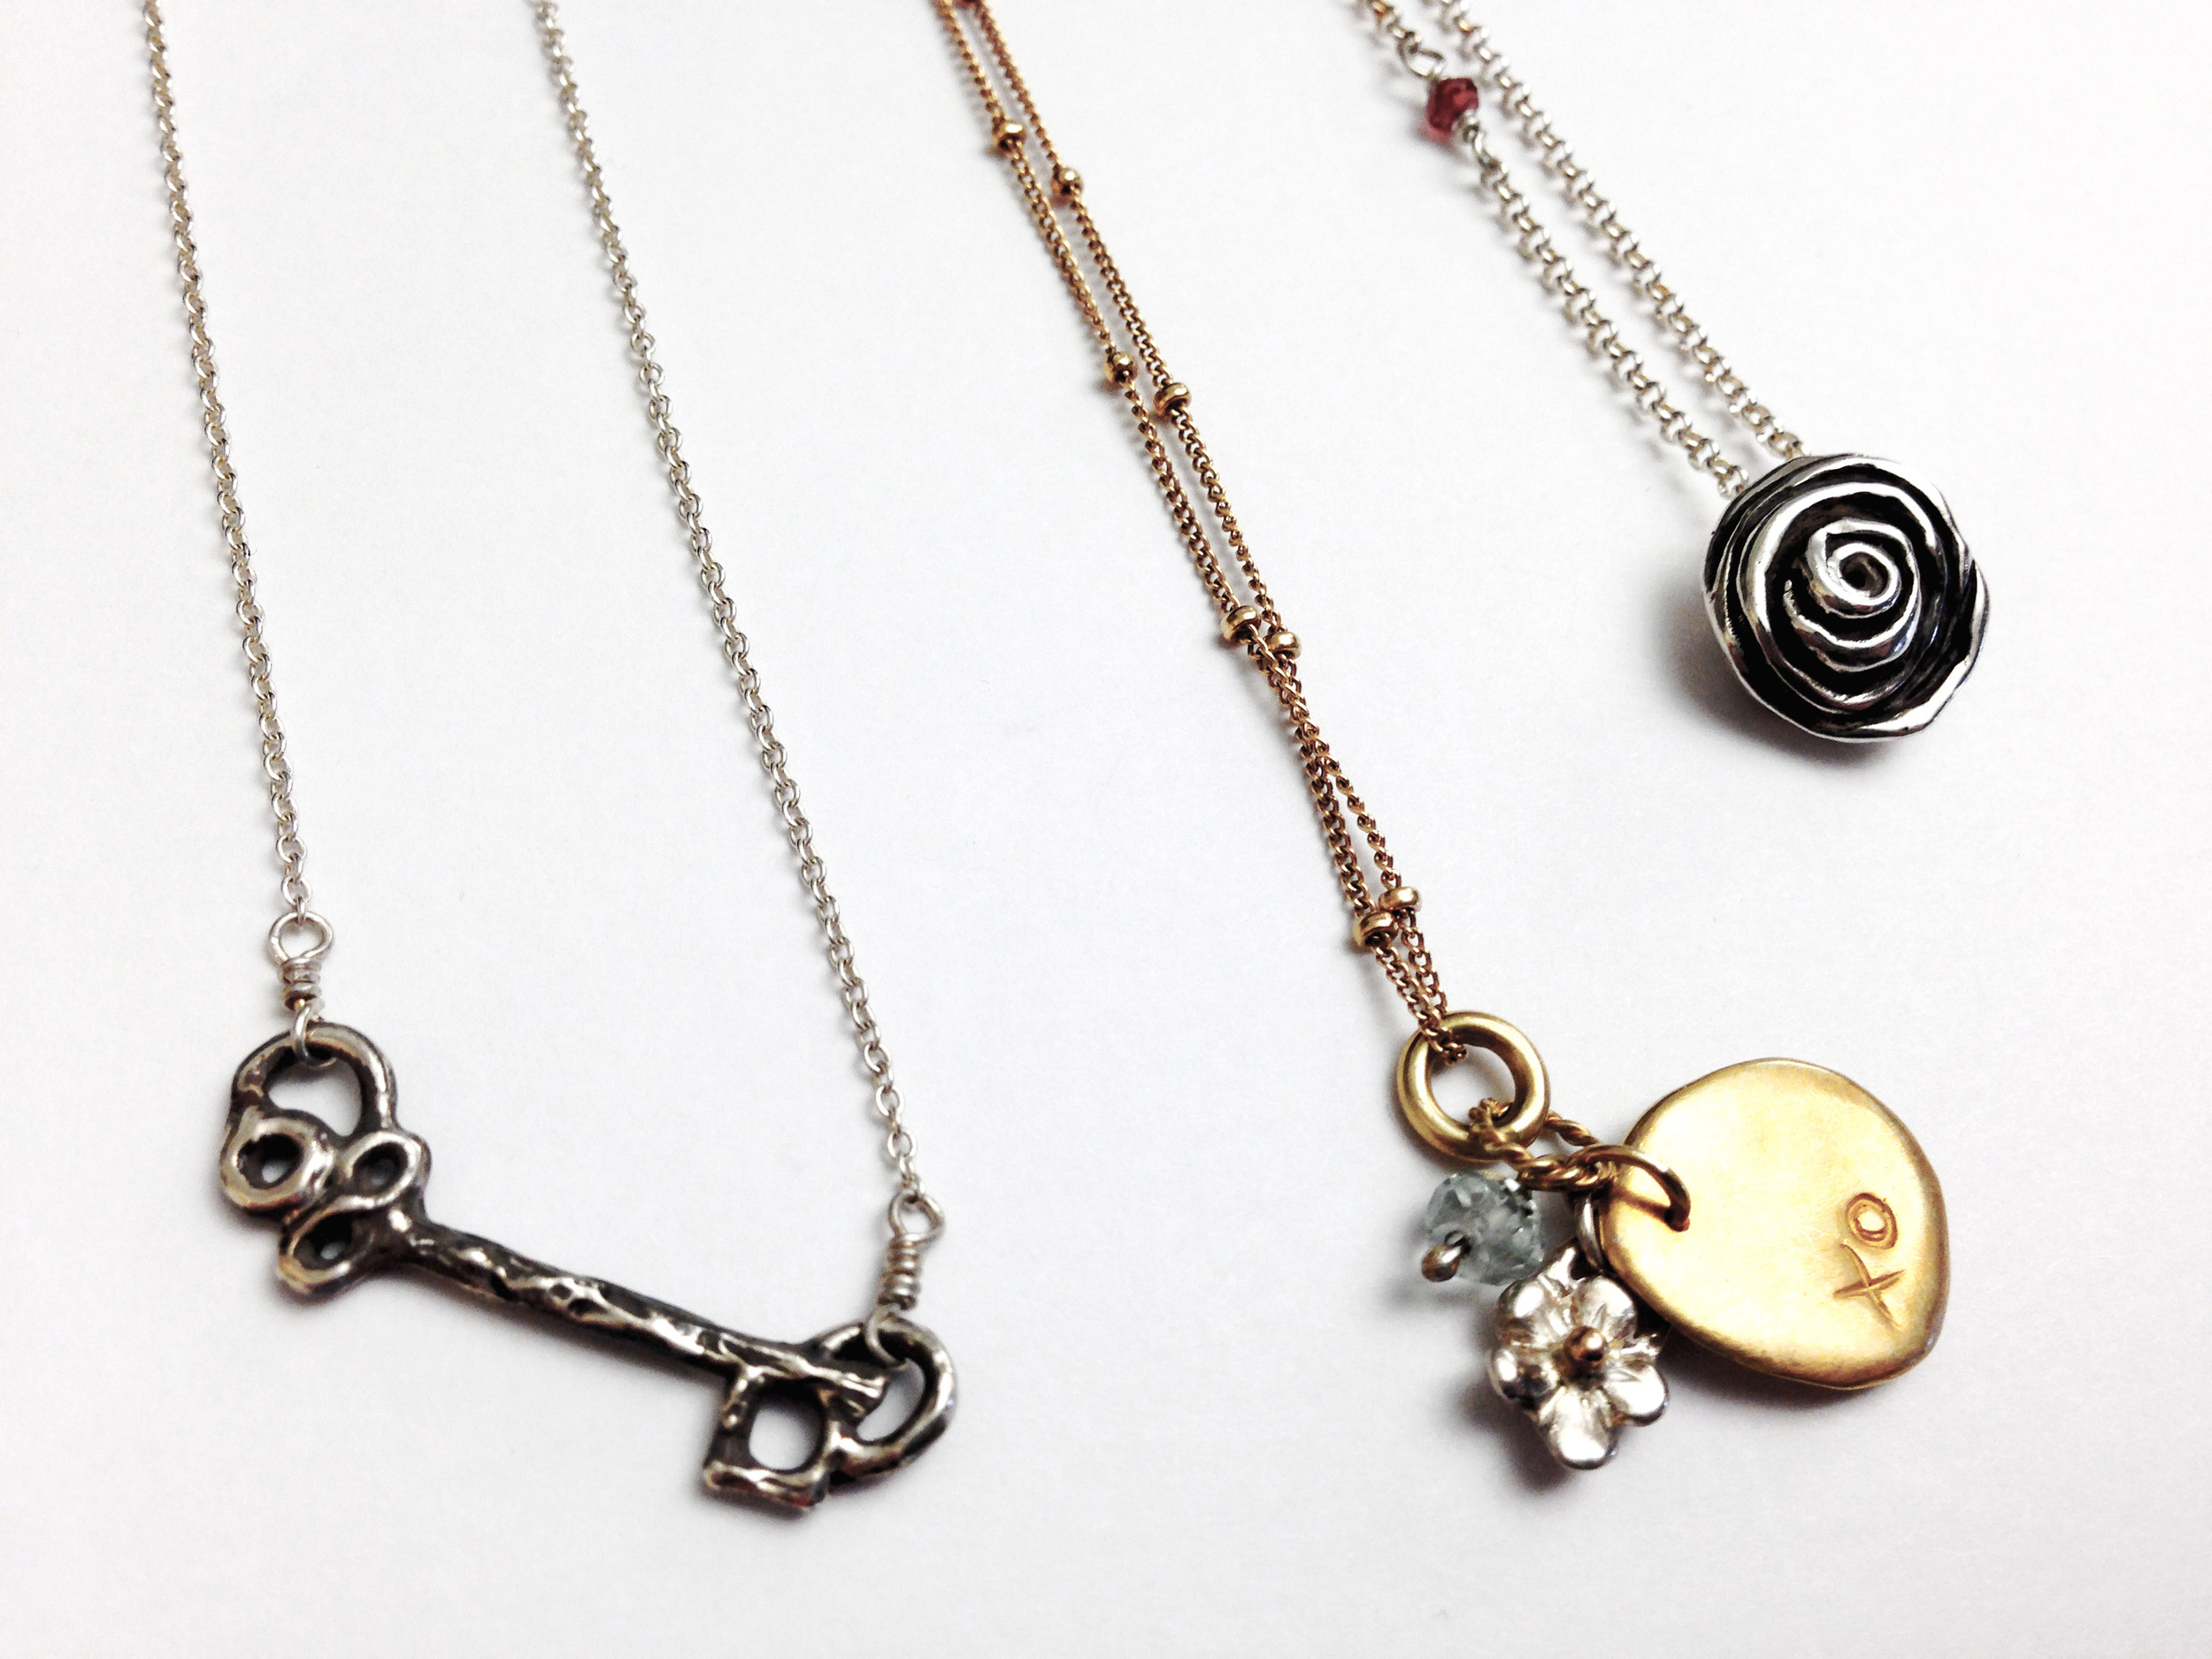 Charm necklaces by Kathryn Rebecca